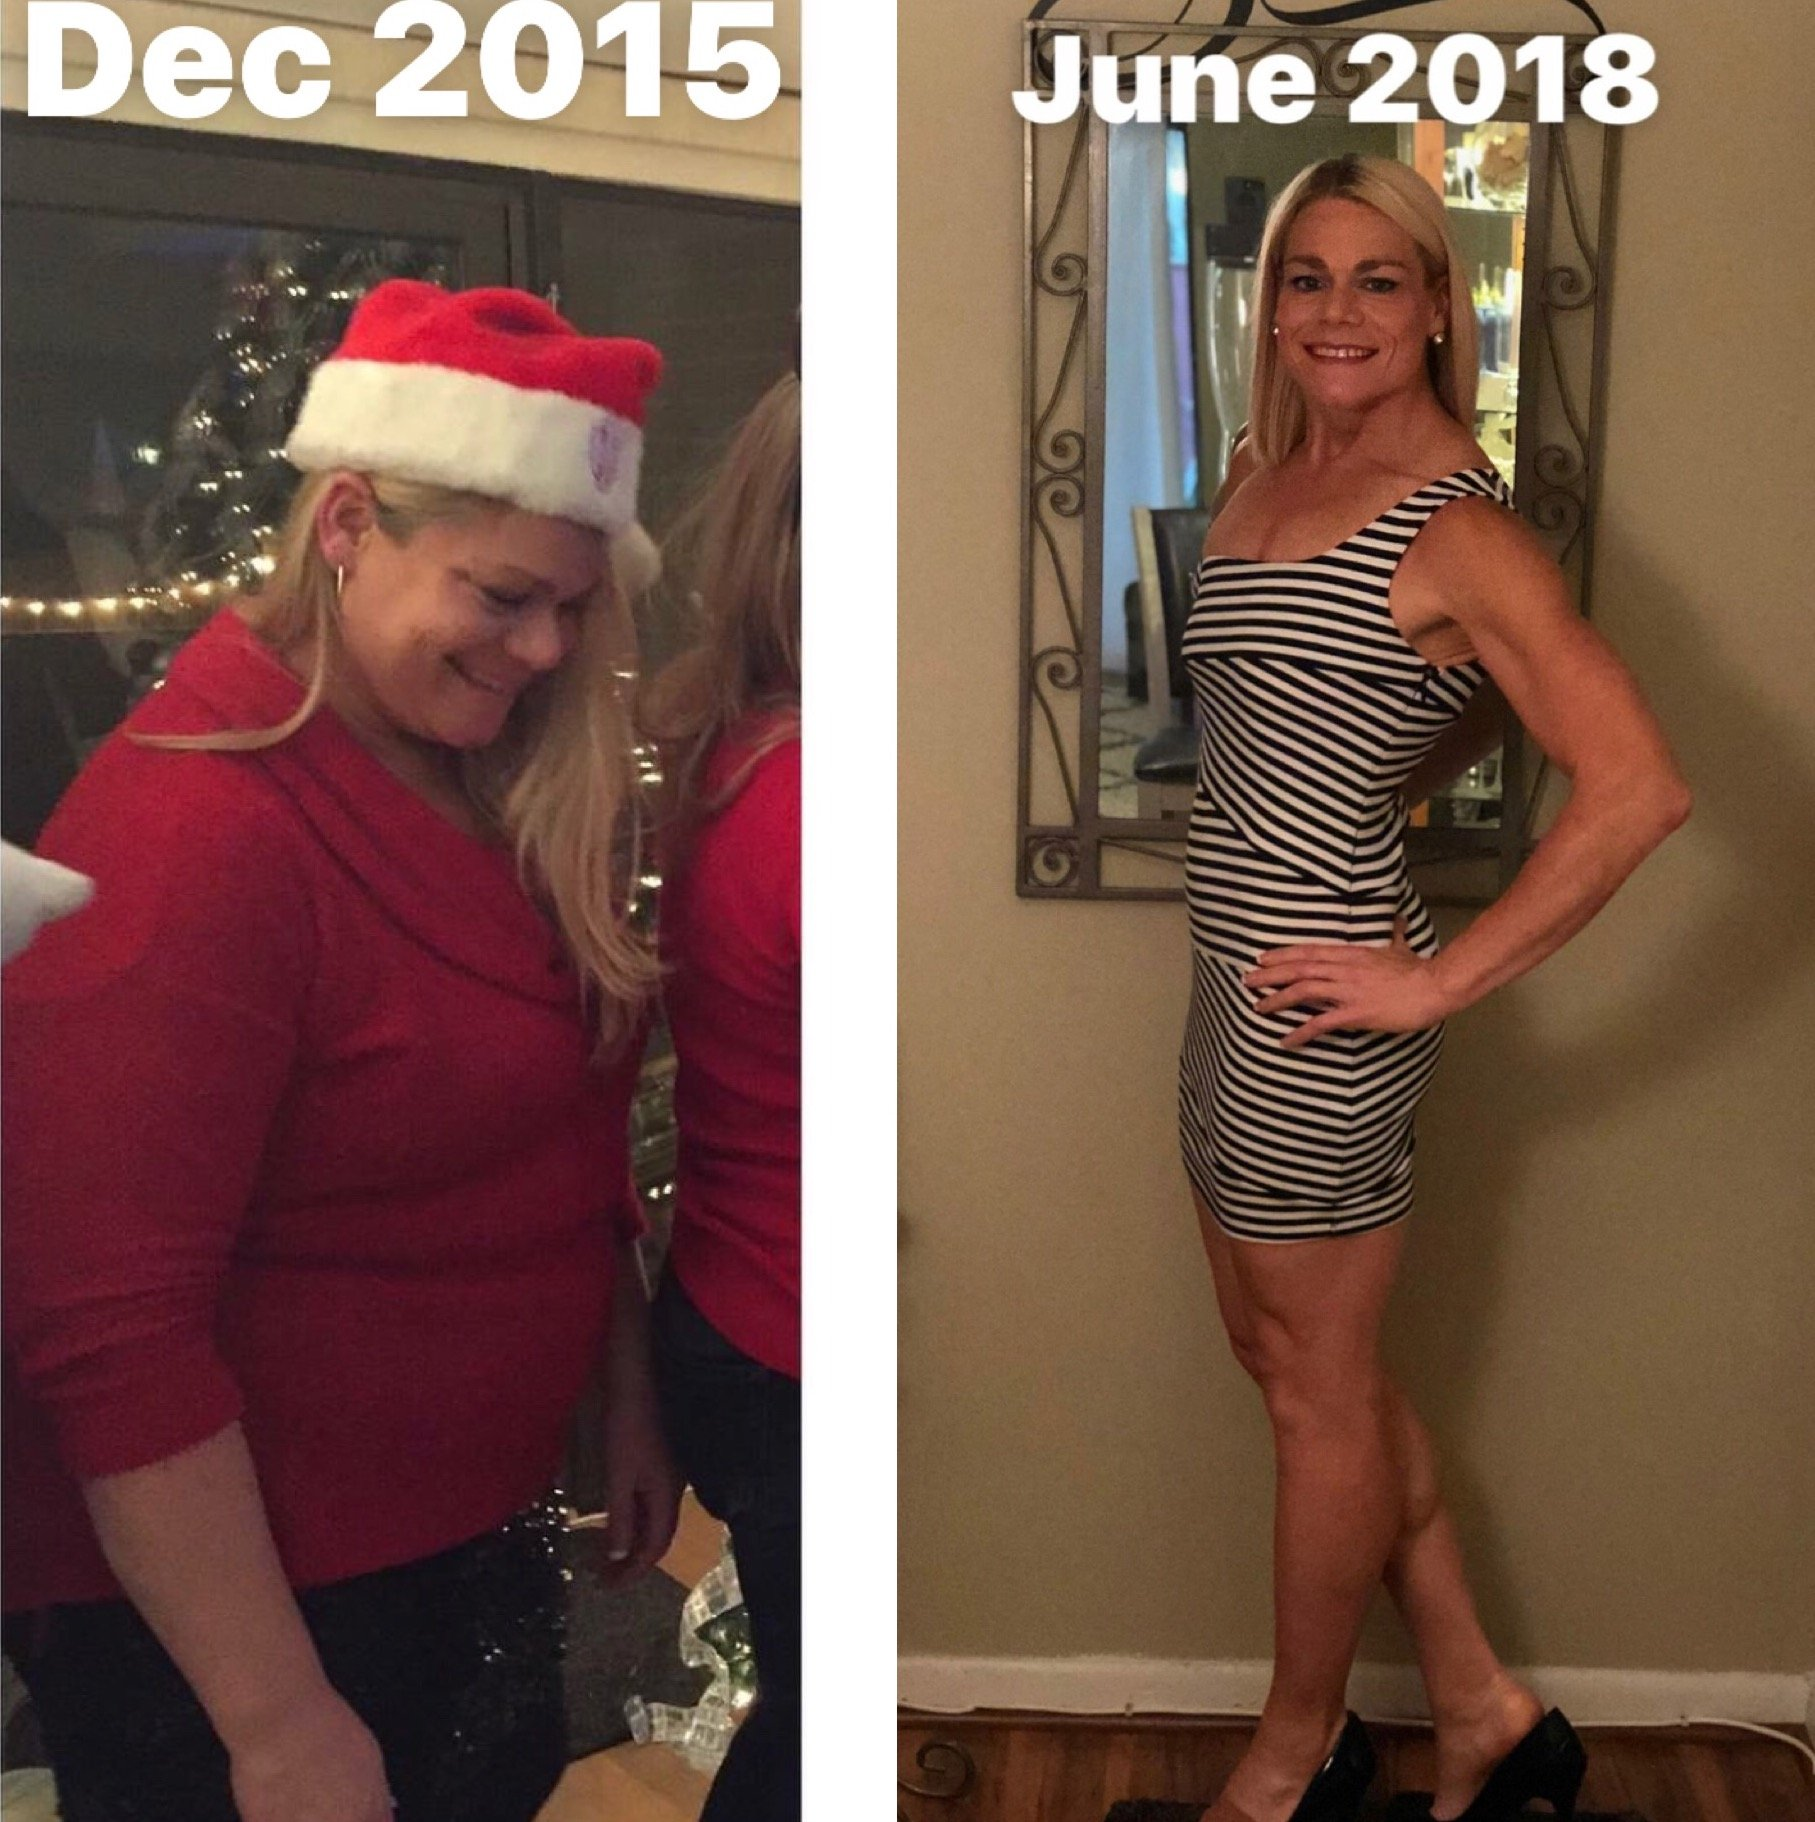 How I Got This Body: Turning 40, Ditching Paleo, and Losing 100 Pounds By Doing CrossFit and Counting Macros images 3